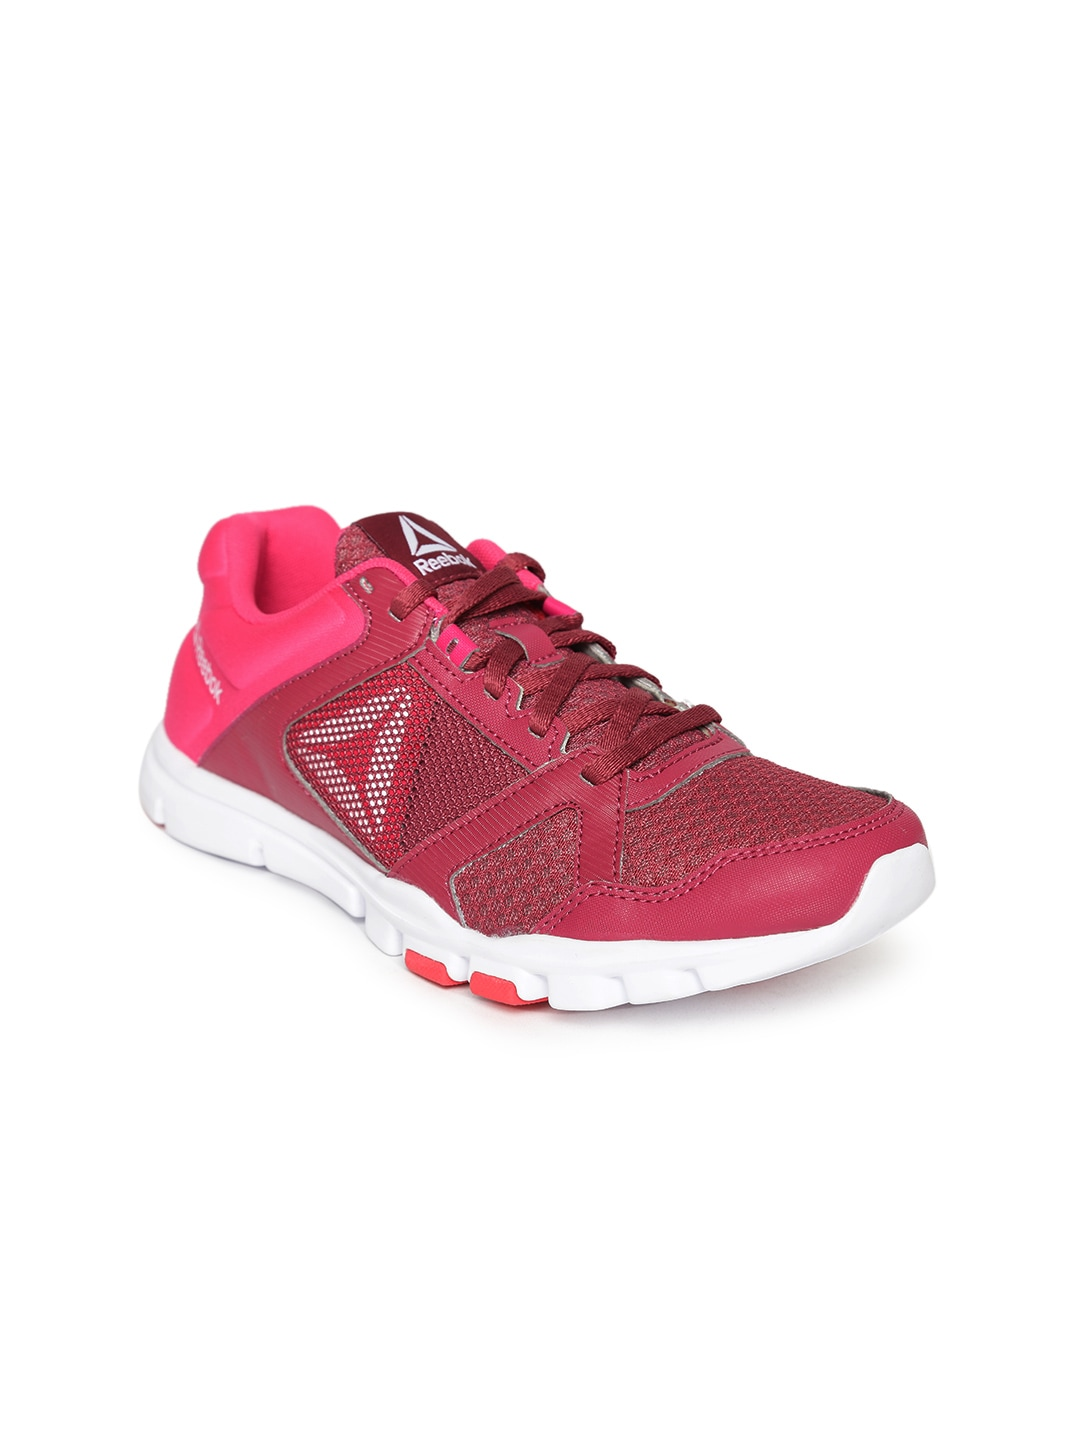 0f8f5207d38 Sports Shoes - Buy Sport Shoes For Men   Women Online